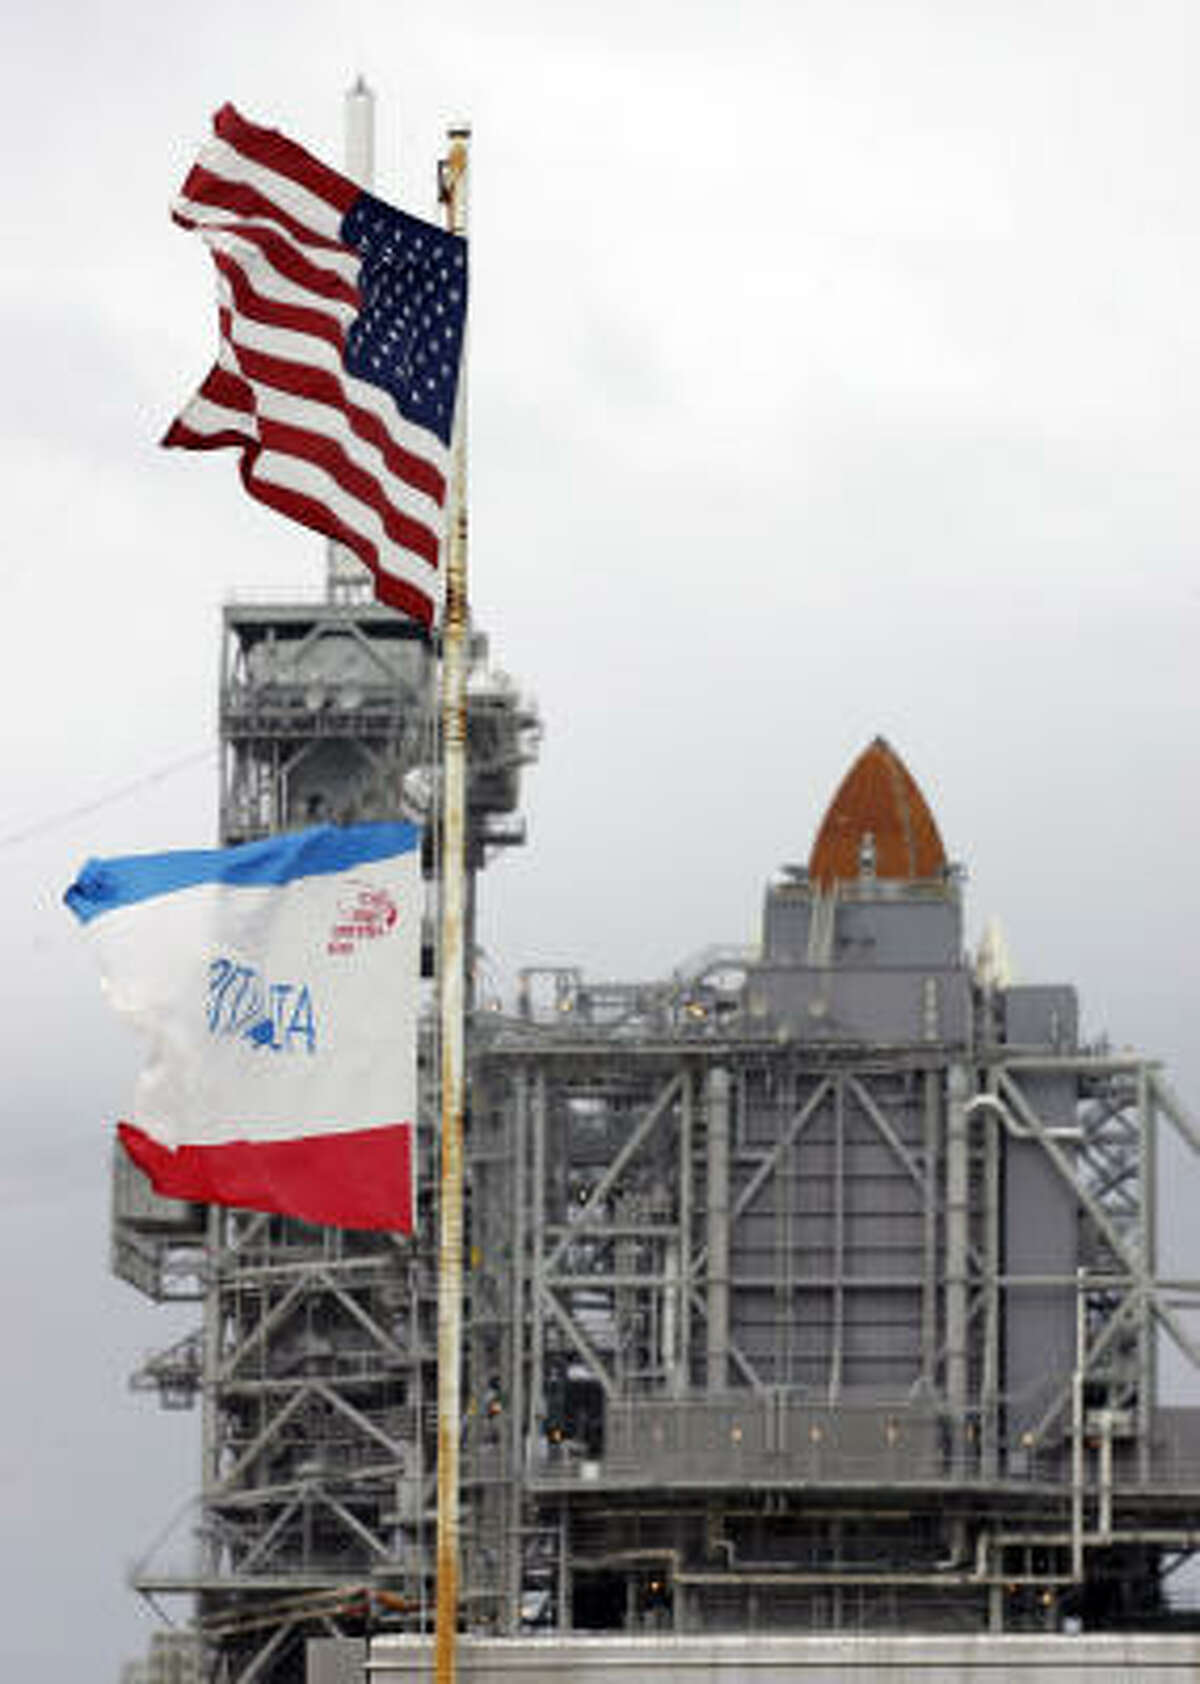 Space shuttle Atlantis sits on pad 39a at the Kennedy Space Center in Cape Canaveral, Fla., on Jan. 3, 2008.